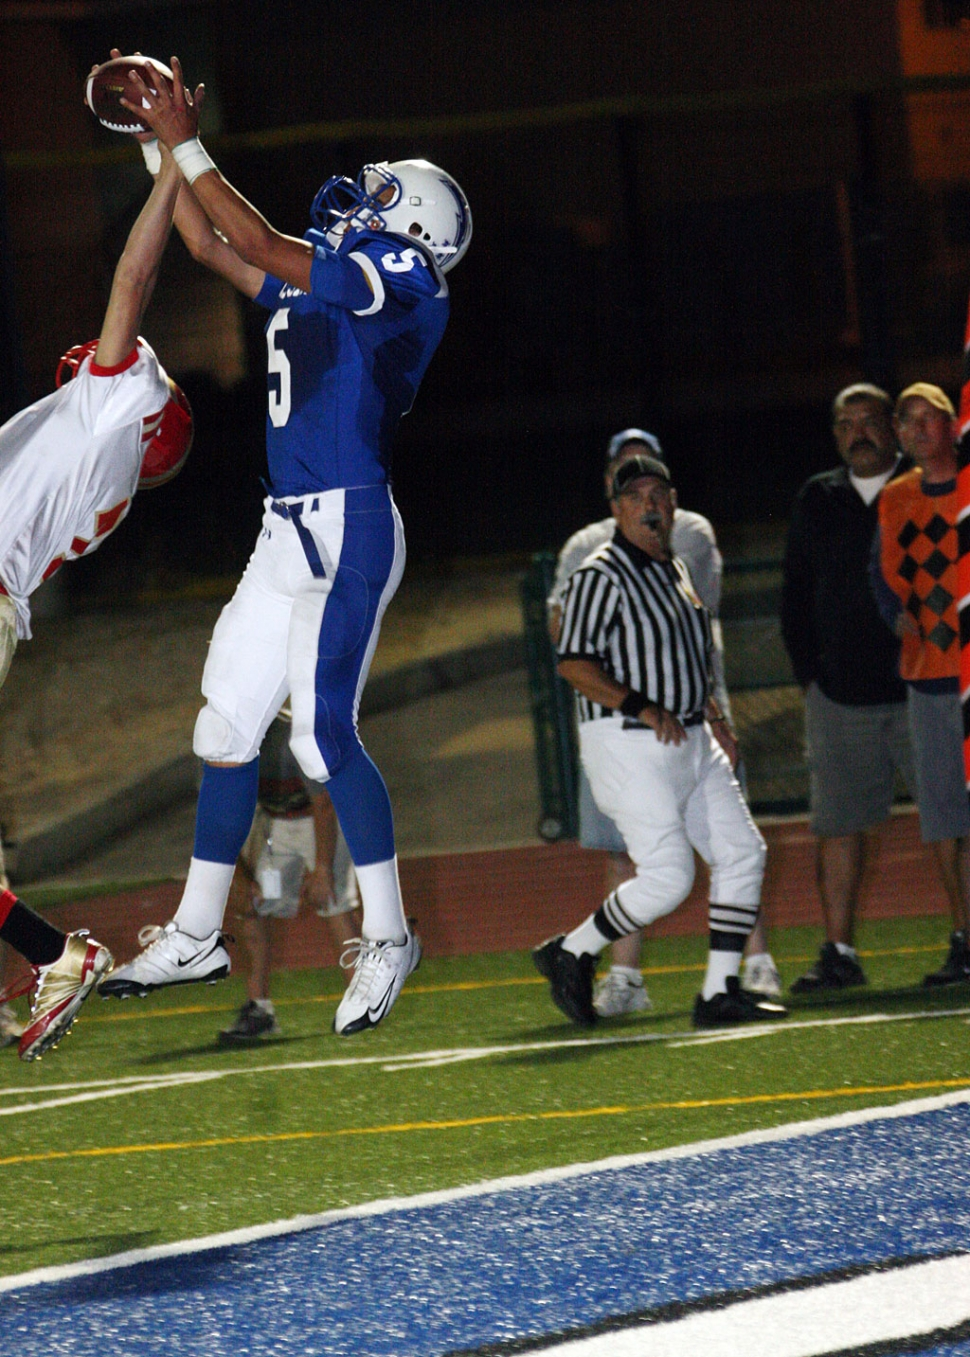 Chris De La Paz jumps to catch a pass thrown by quarterback Corey Cole for a touchdown.